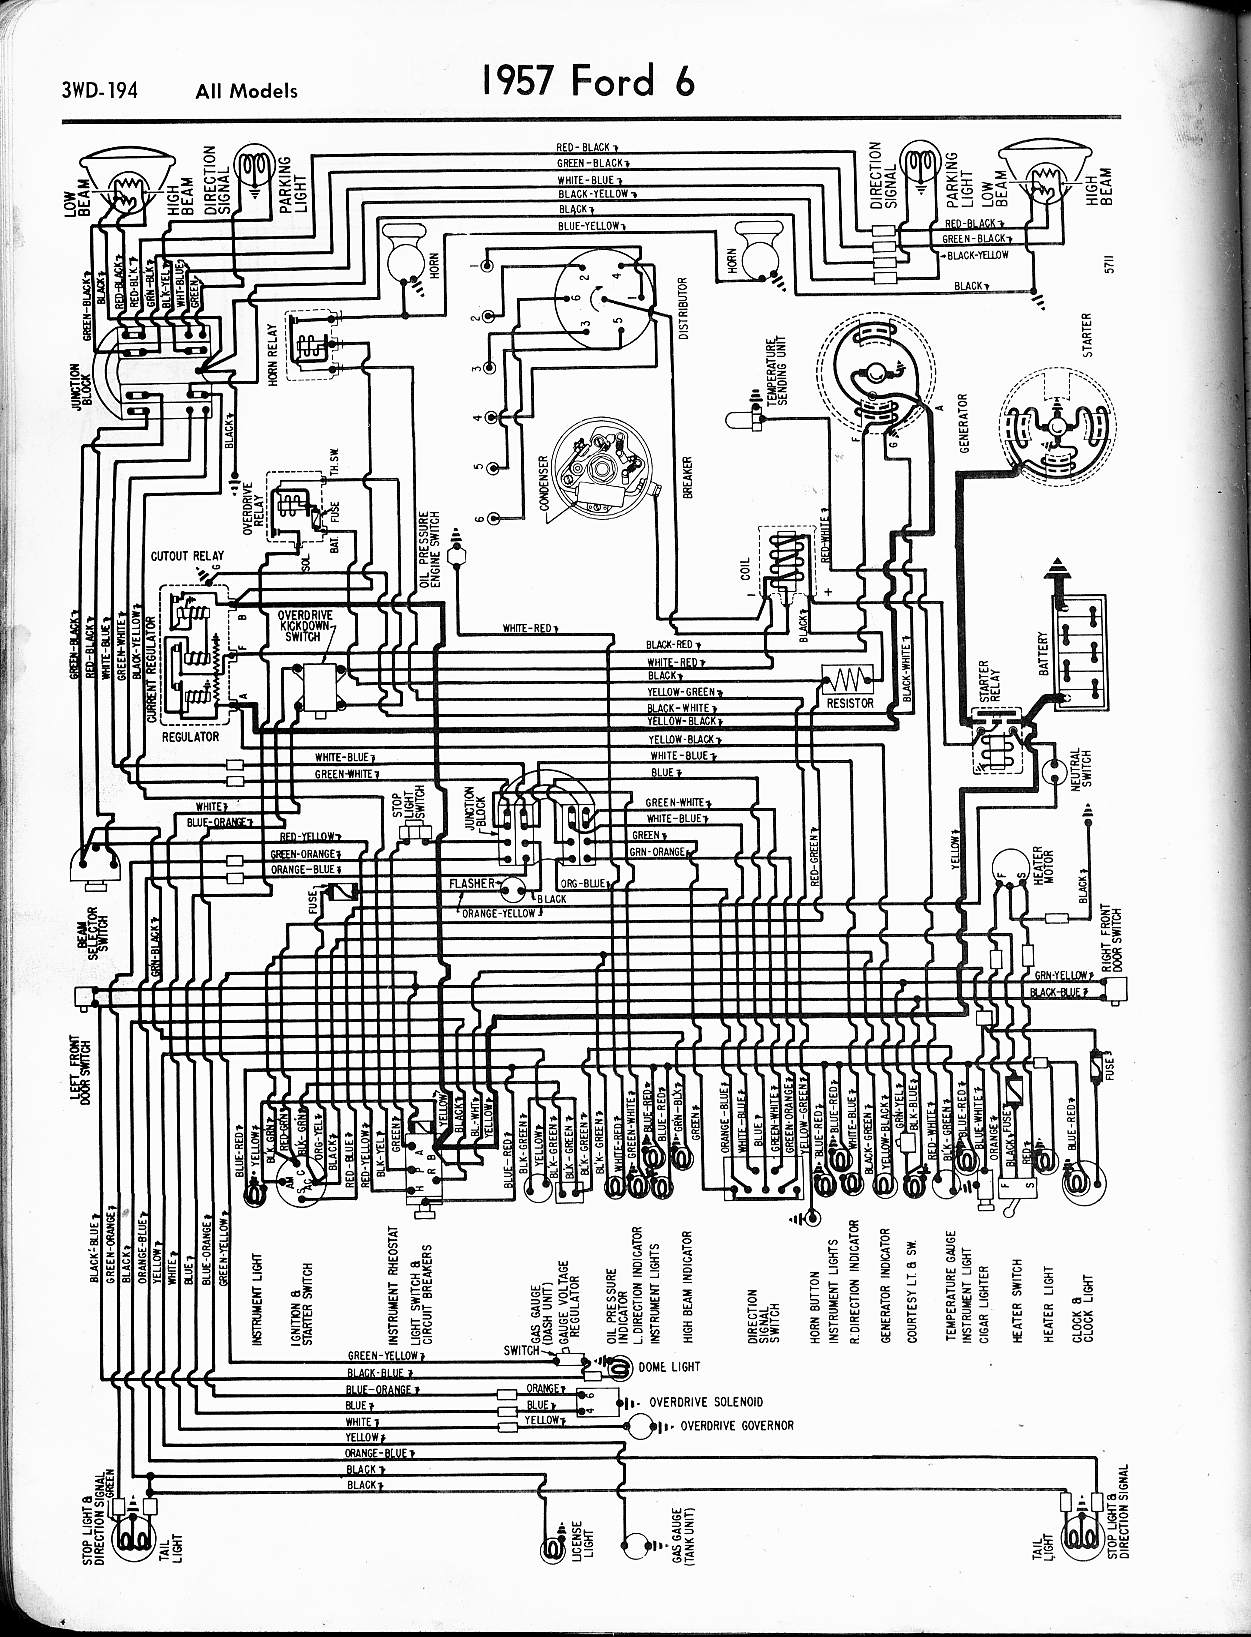 1963 ford galaxie wiring diagram html with 3s5tp 1955 Ford F100 Pickup Turn Signals Tail Lights Brake Lights on 573258 New 3g Alternator Wiring Harness Problem 2 moreover 59652 1962 Ford Falcon Steering Column Exploded View in addition 1347412 Alternator Gauge Wiring Help in addition 3s5tp 1955 Ford F100 Pickup Turn Signals Tail Lights Brake Lights together with 7vaw8 Ford Thunderbird Current Troubleshooting Power Windows.